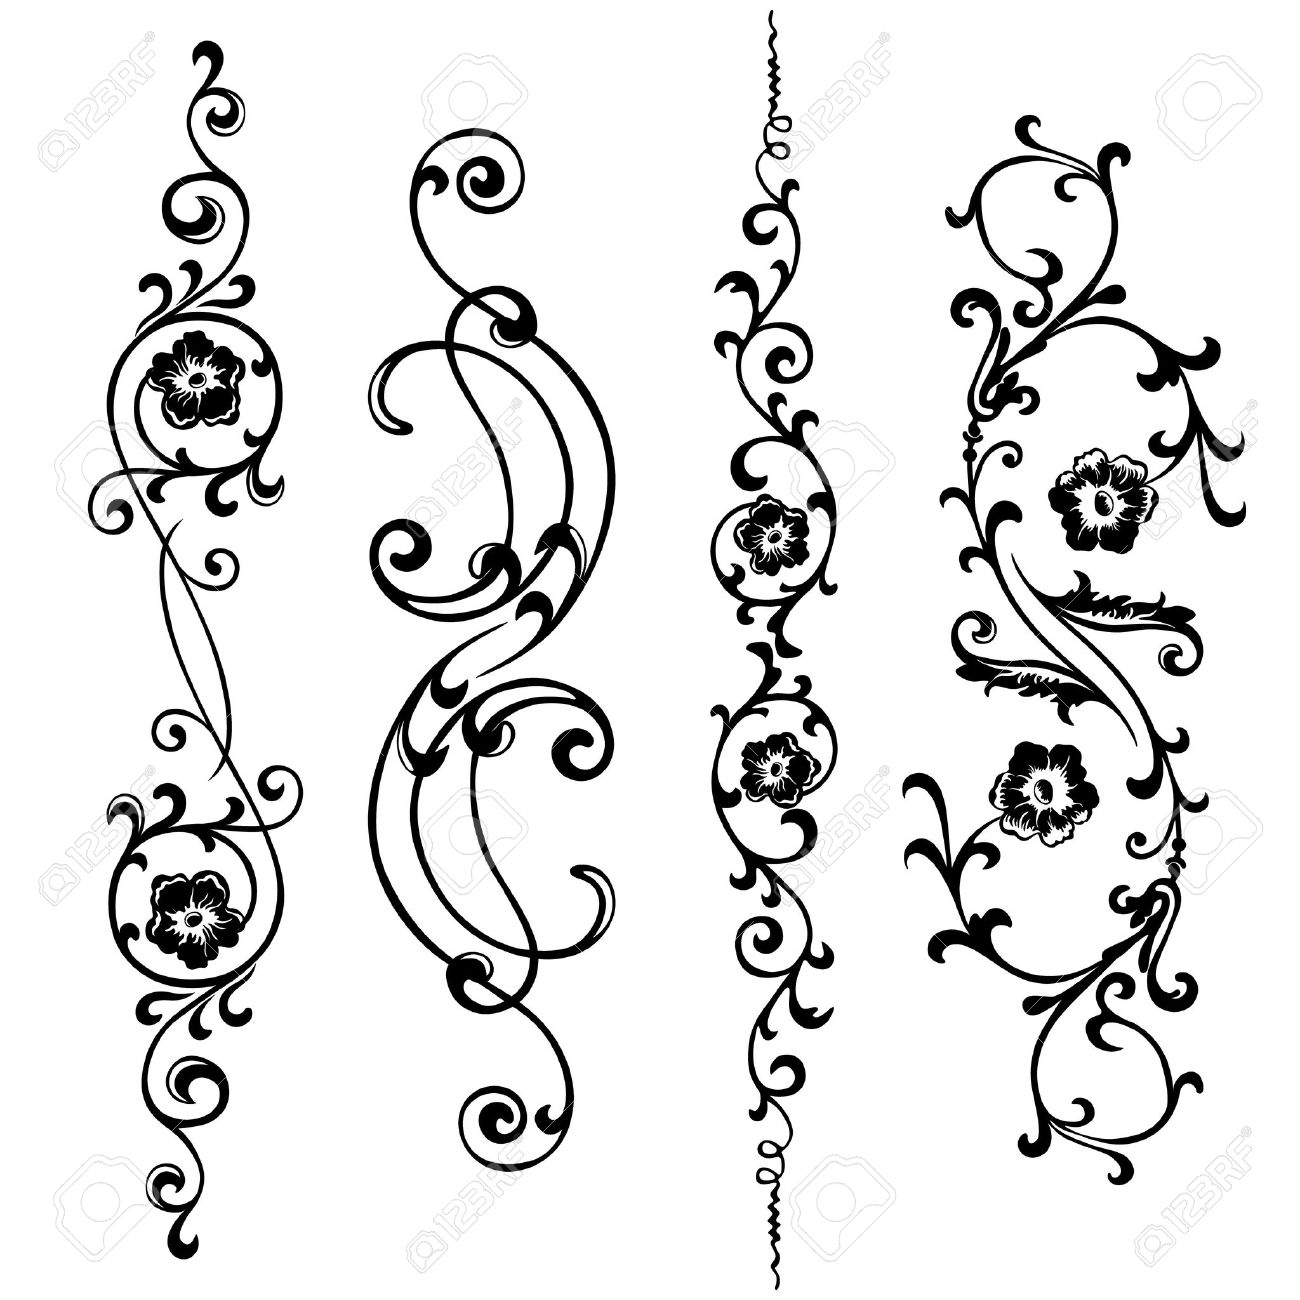 a set of swirling elements for design flowers and ornaments